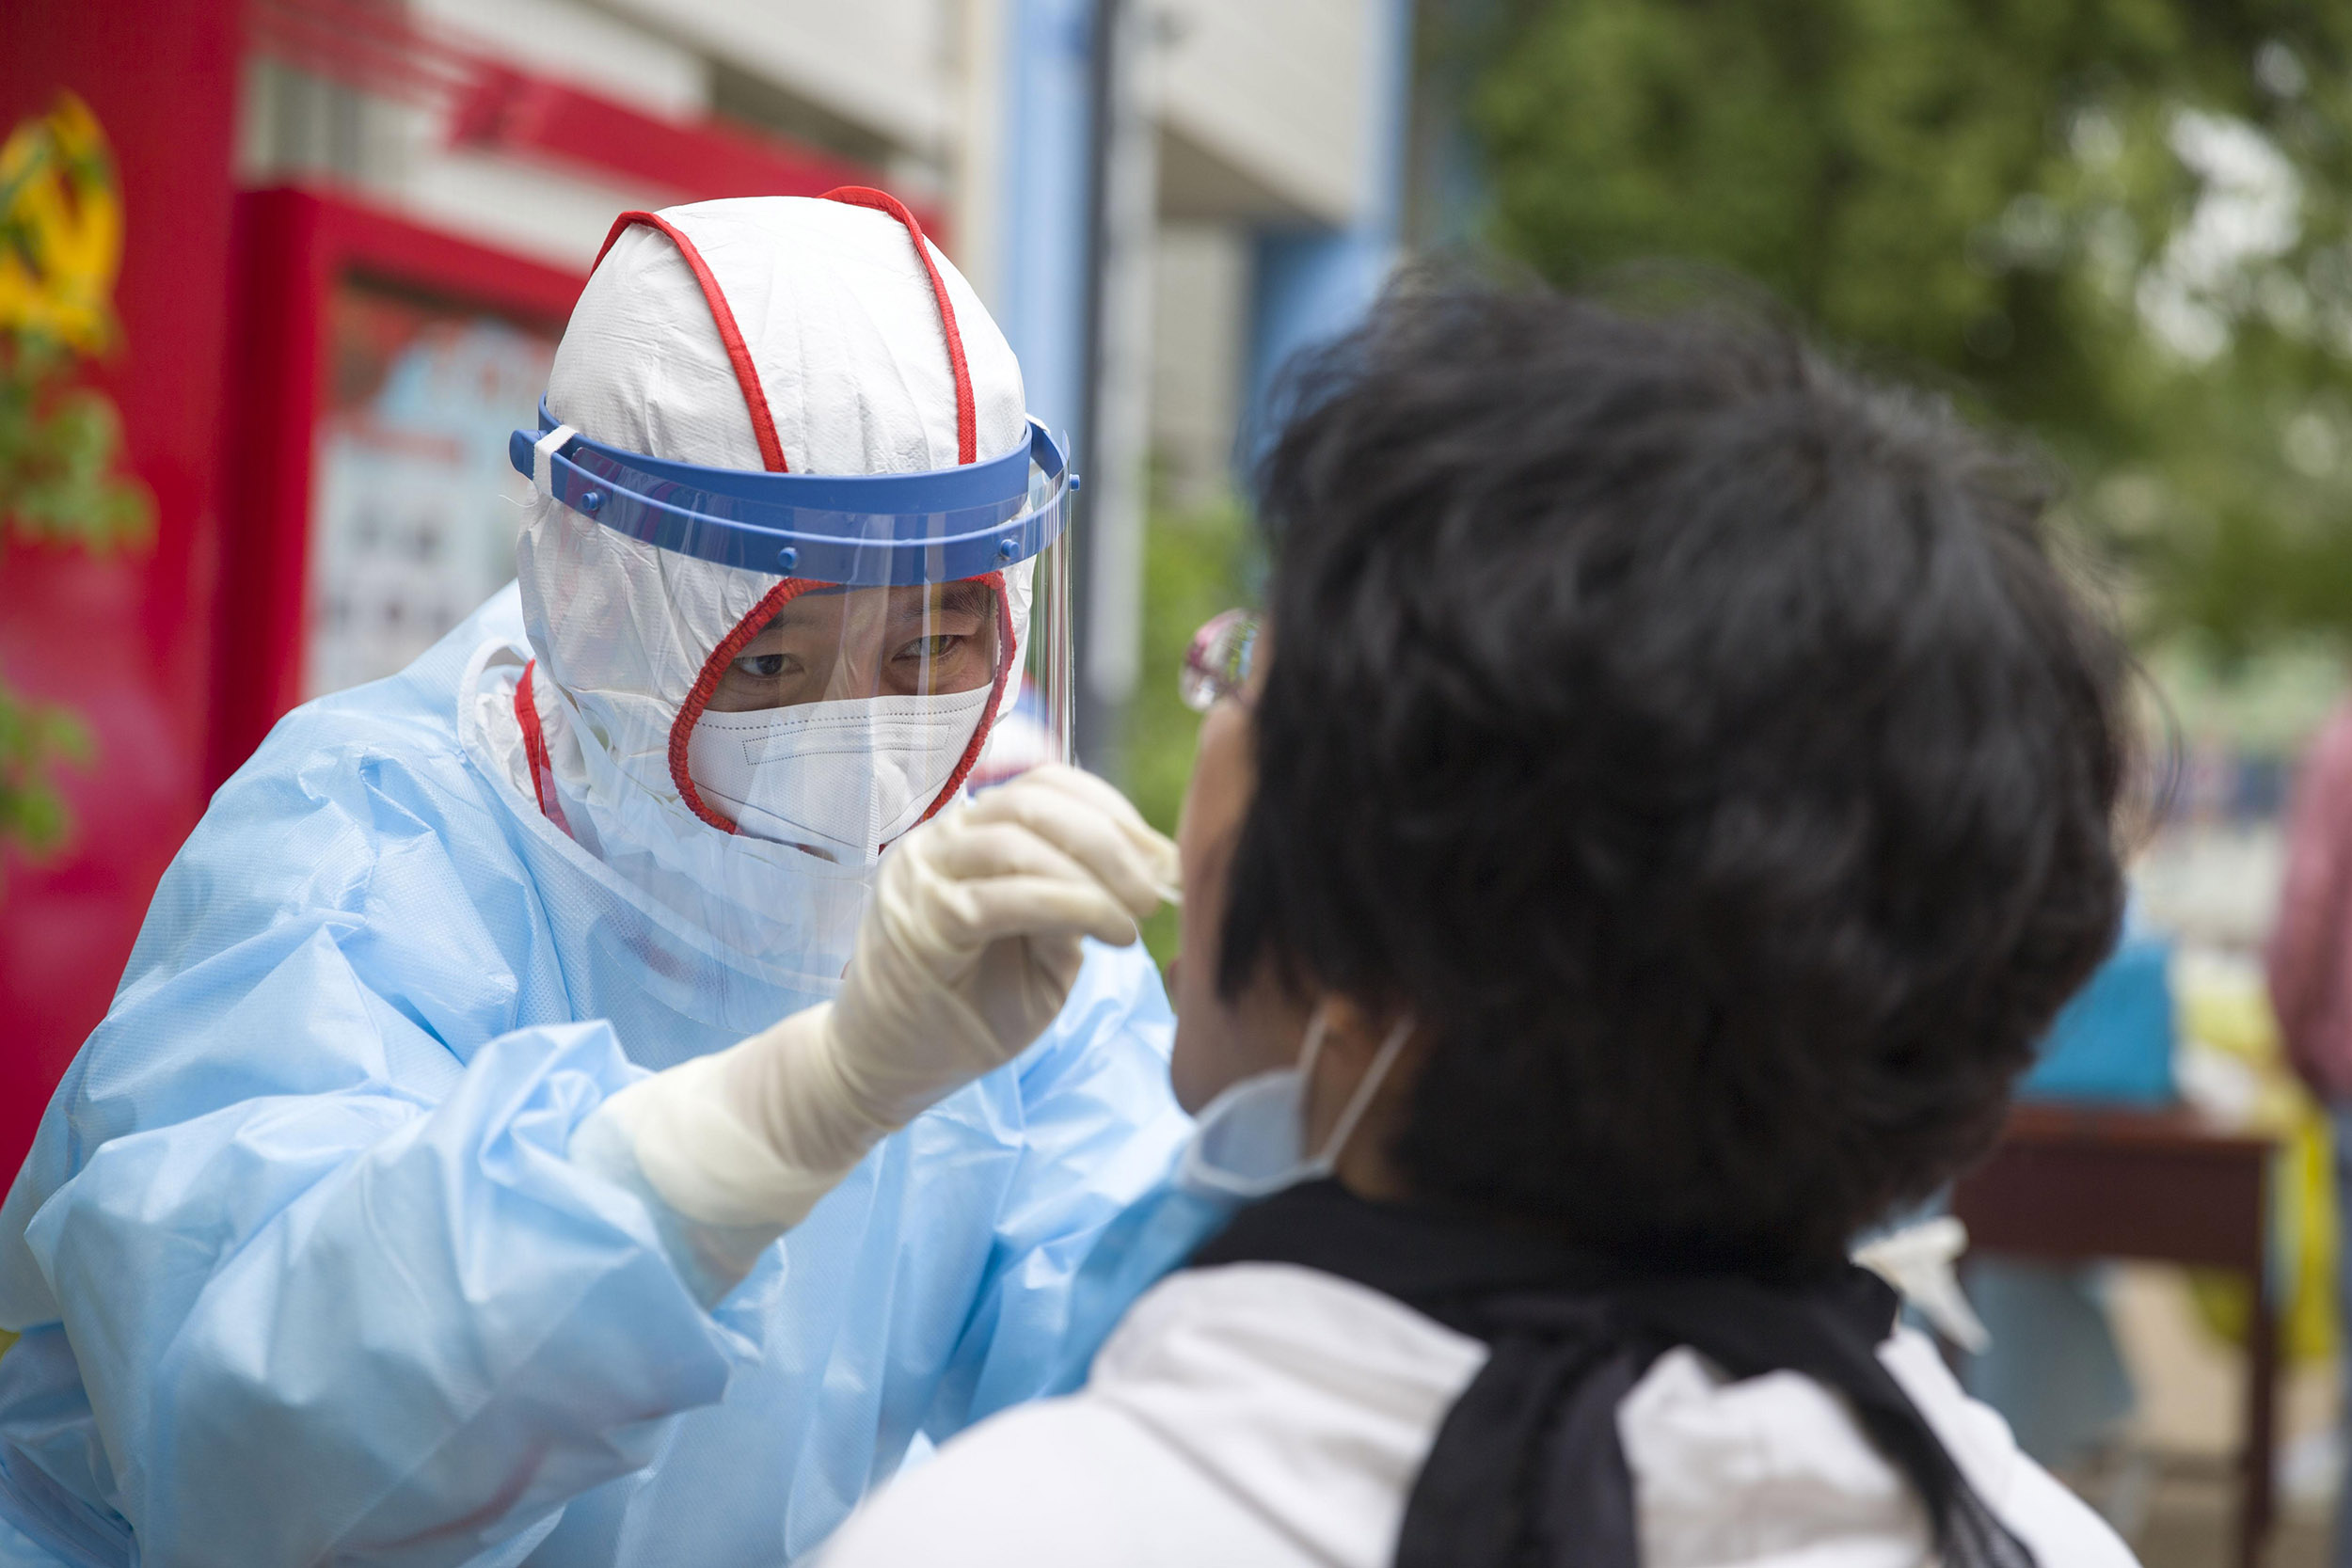 A medical worker wearing personal protective equipment (PPE) collects samples from a teacher for nucleic acid testing for the coronavirus at a primary school in Taiyuan, China, on Wednesday, May 13.